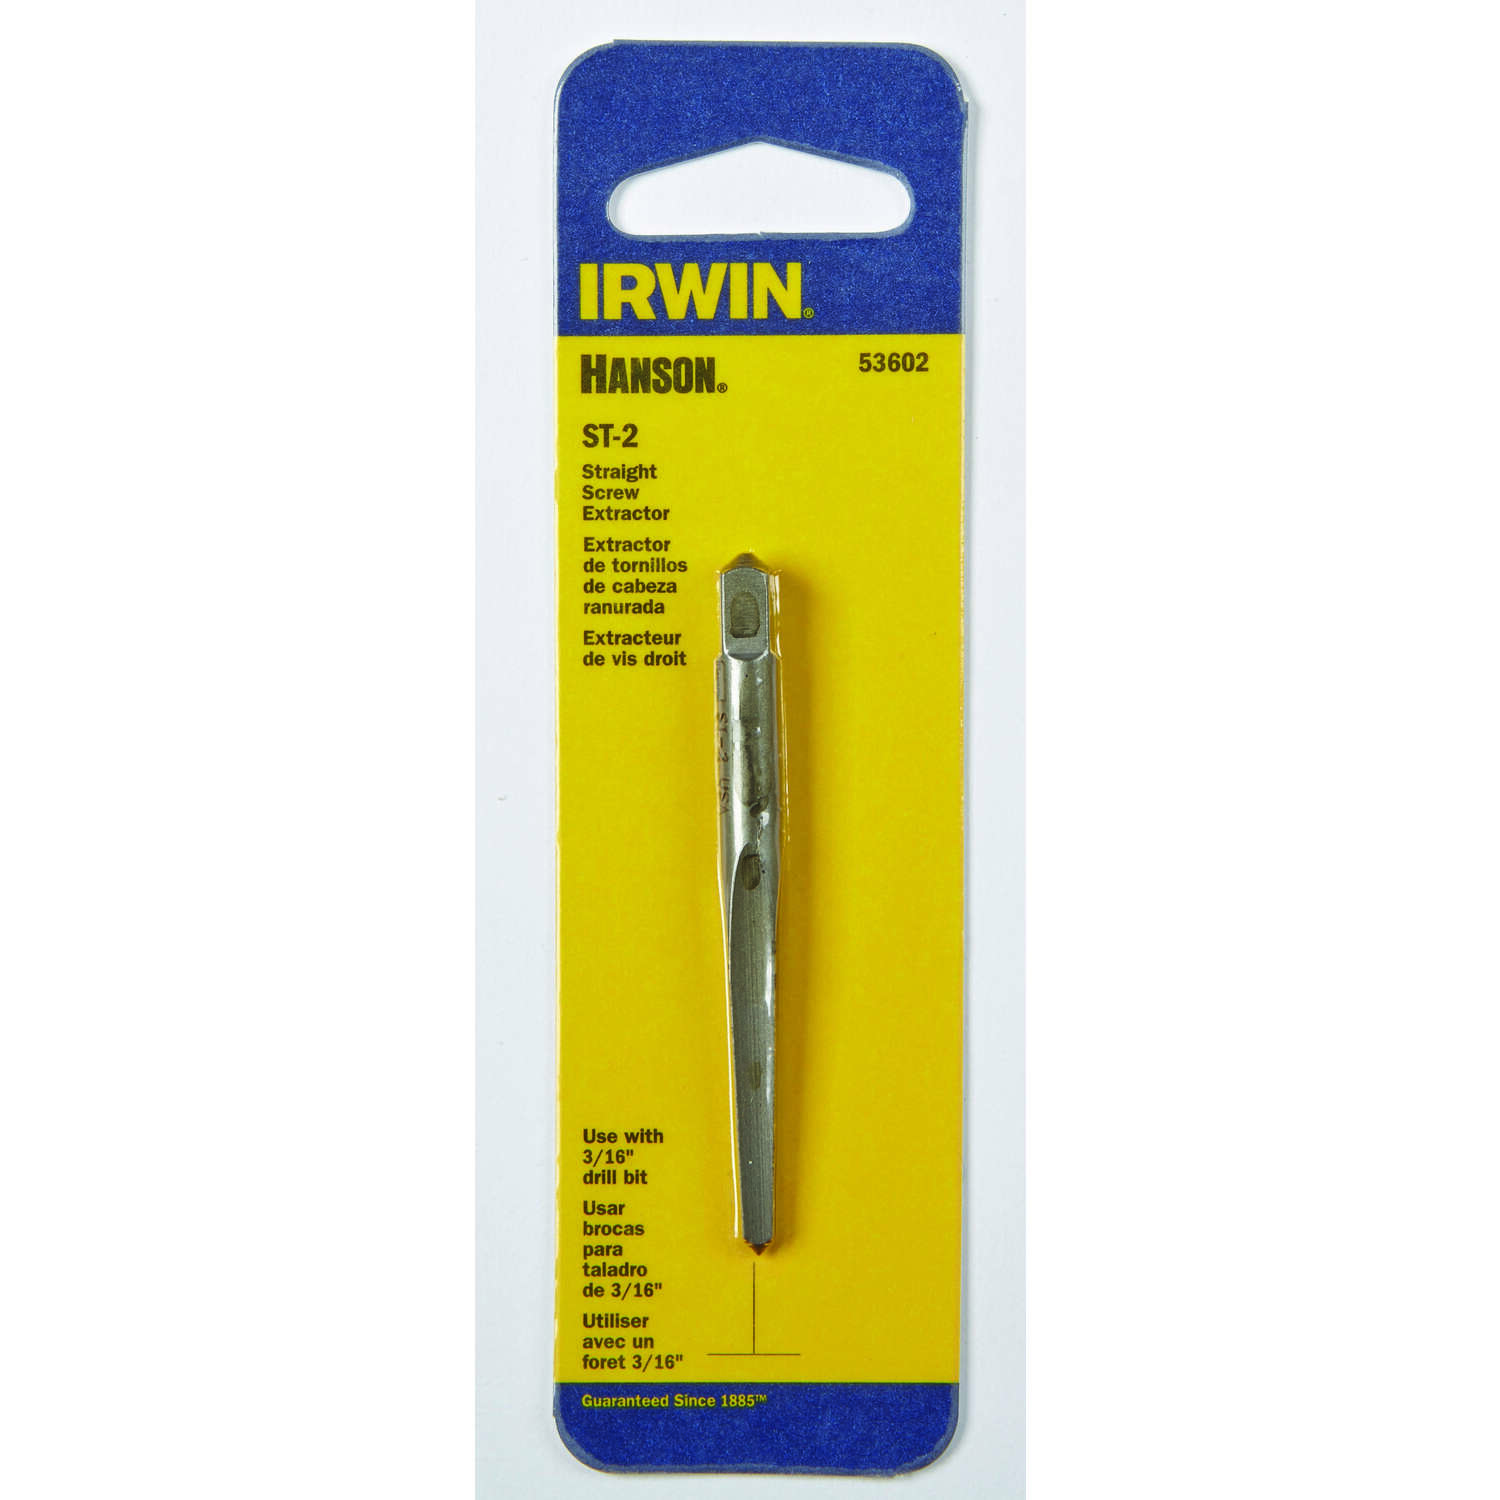 Irwin  Hanson  3/16 in.  x 3/16 in. Dia. Carbon Steel  Straight Screw Extractor  5.4 in. 1 pc.